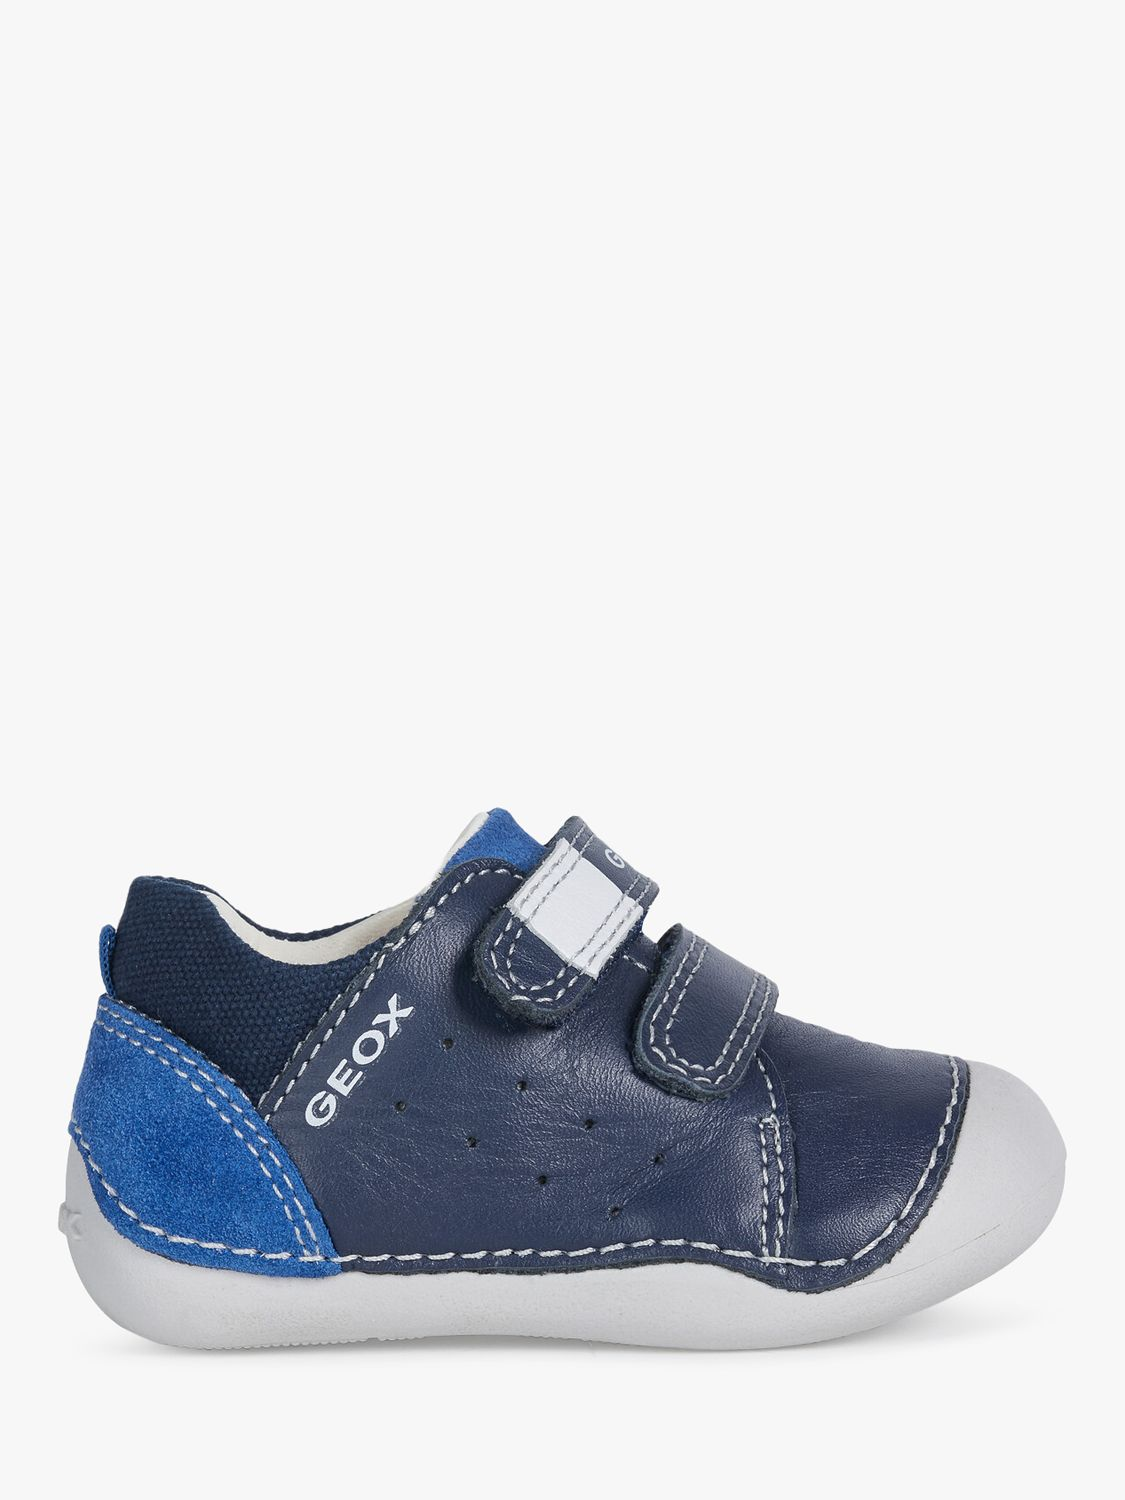 Geox Geox Junior Tutim Riptape Trainers, Navy/Royal